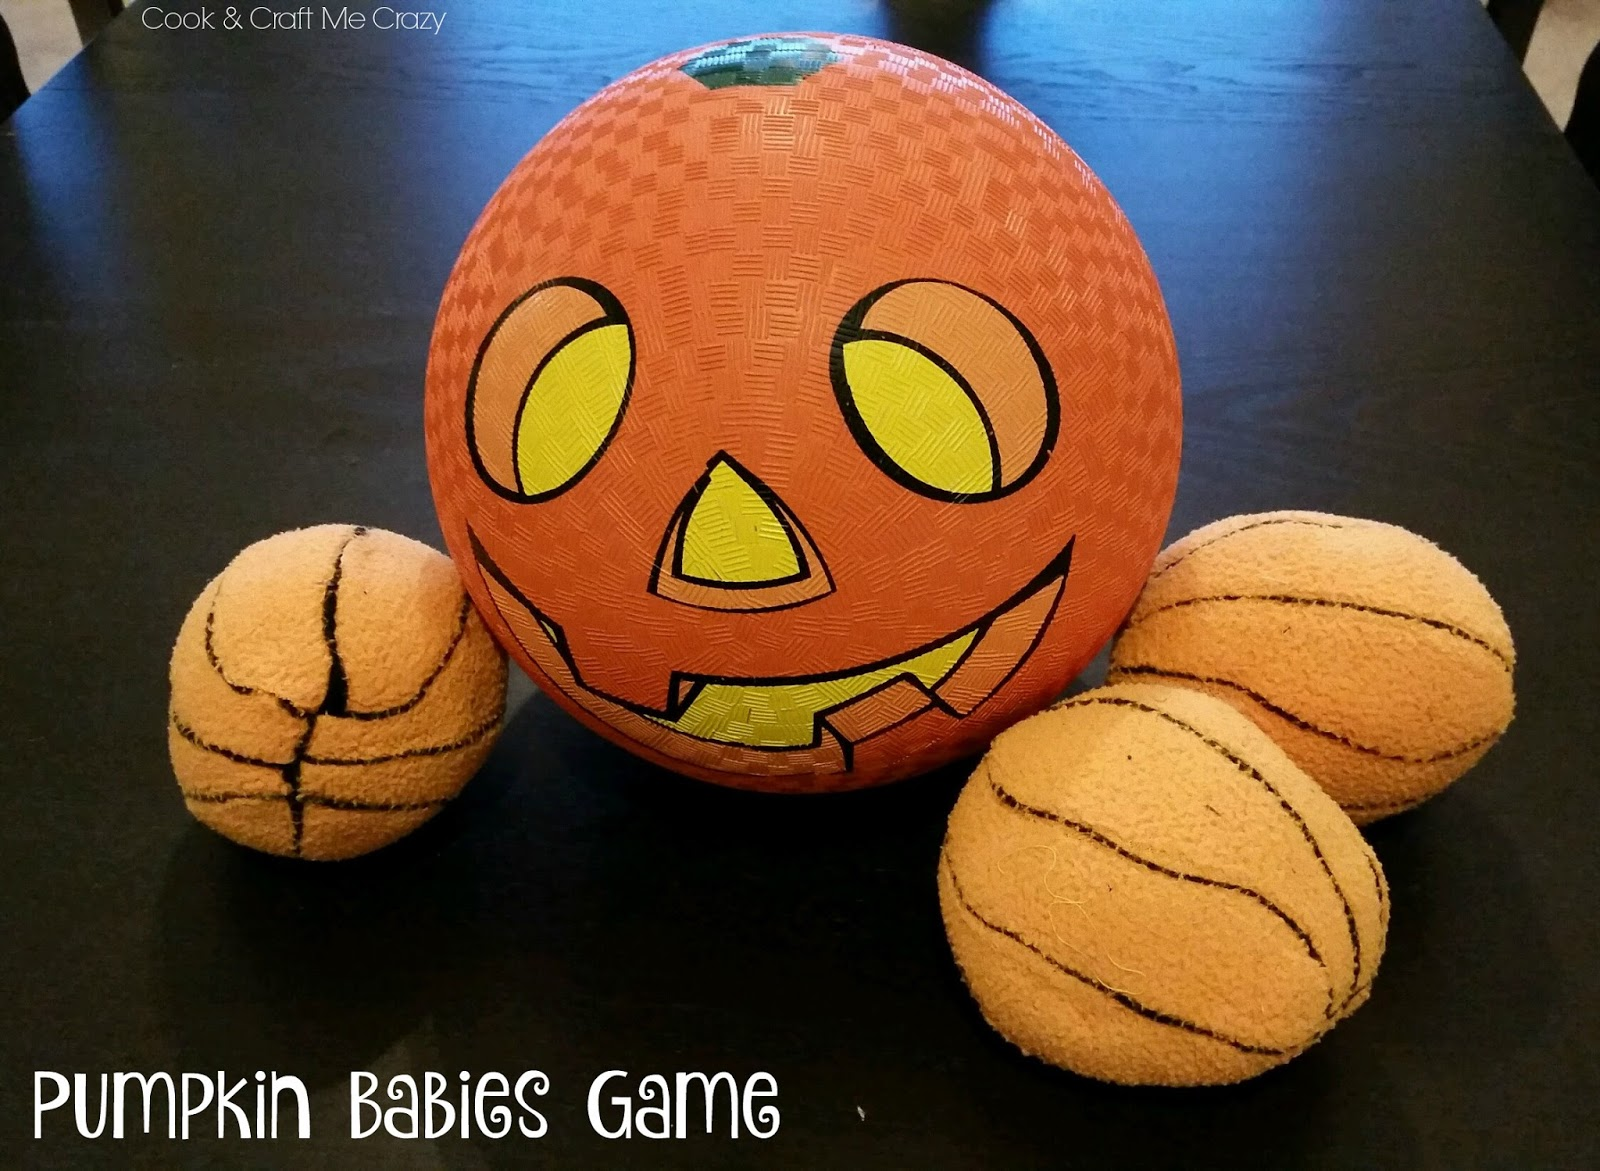 Cook and Craft Me Crazy: 5 fun Halloween party games!